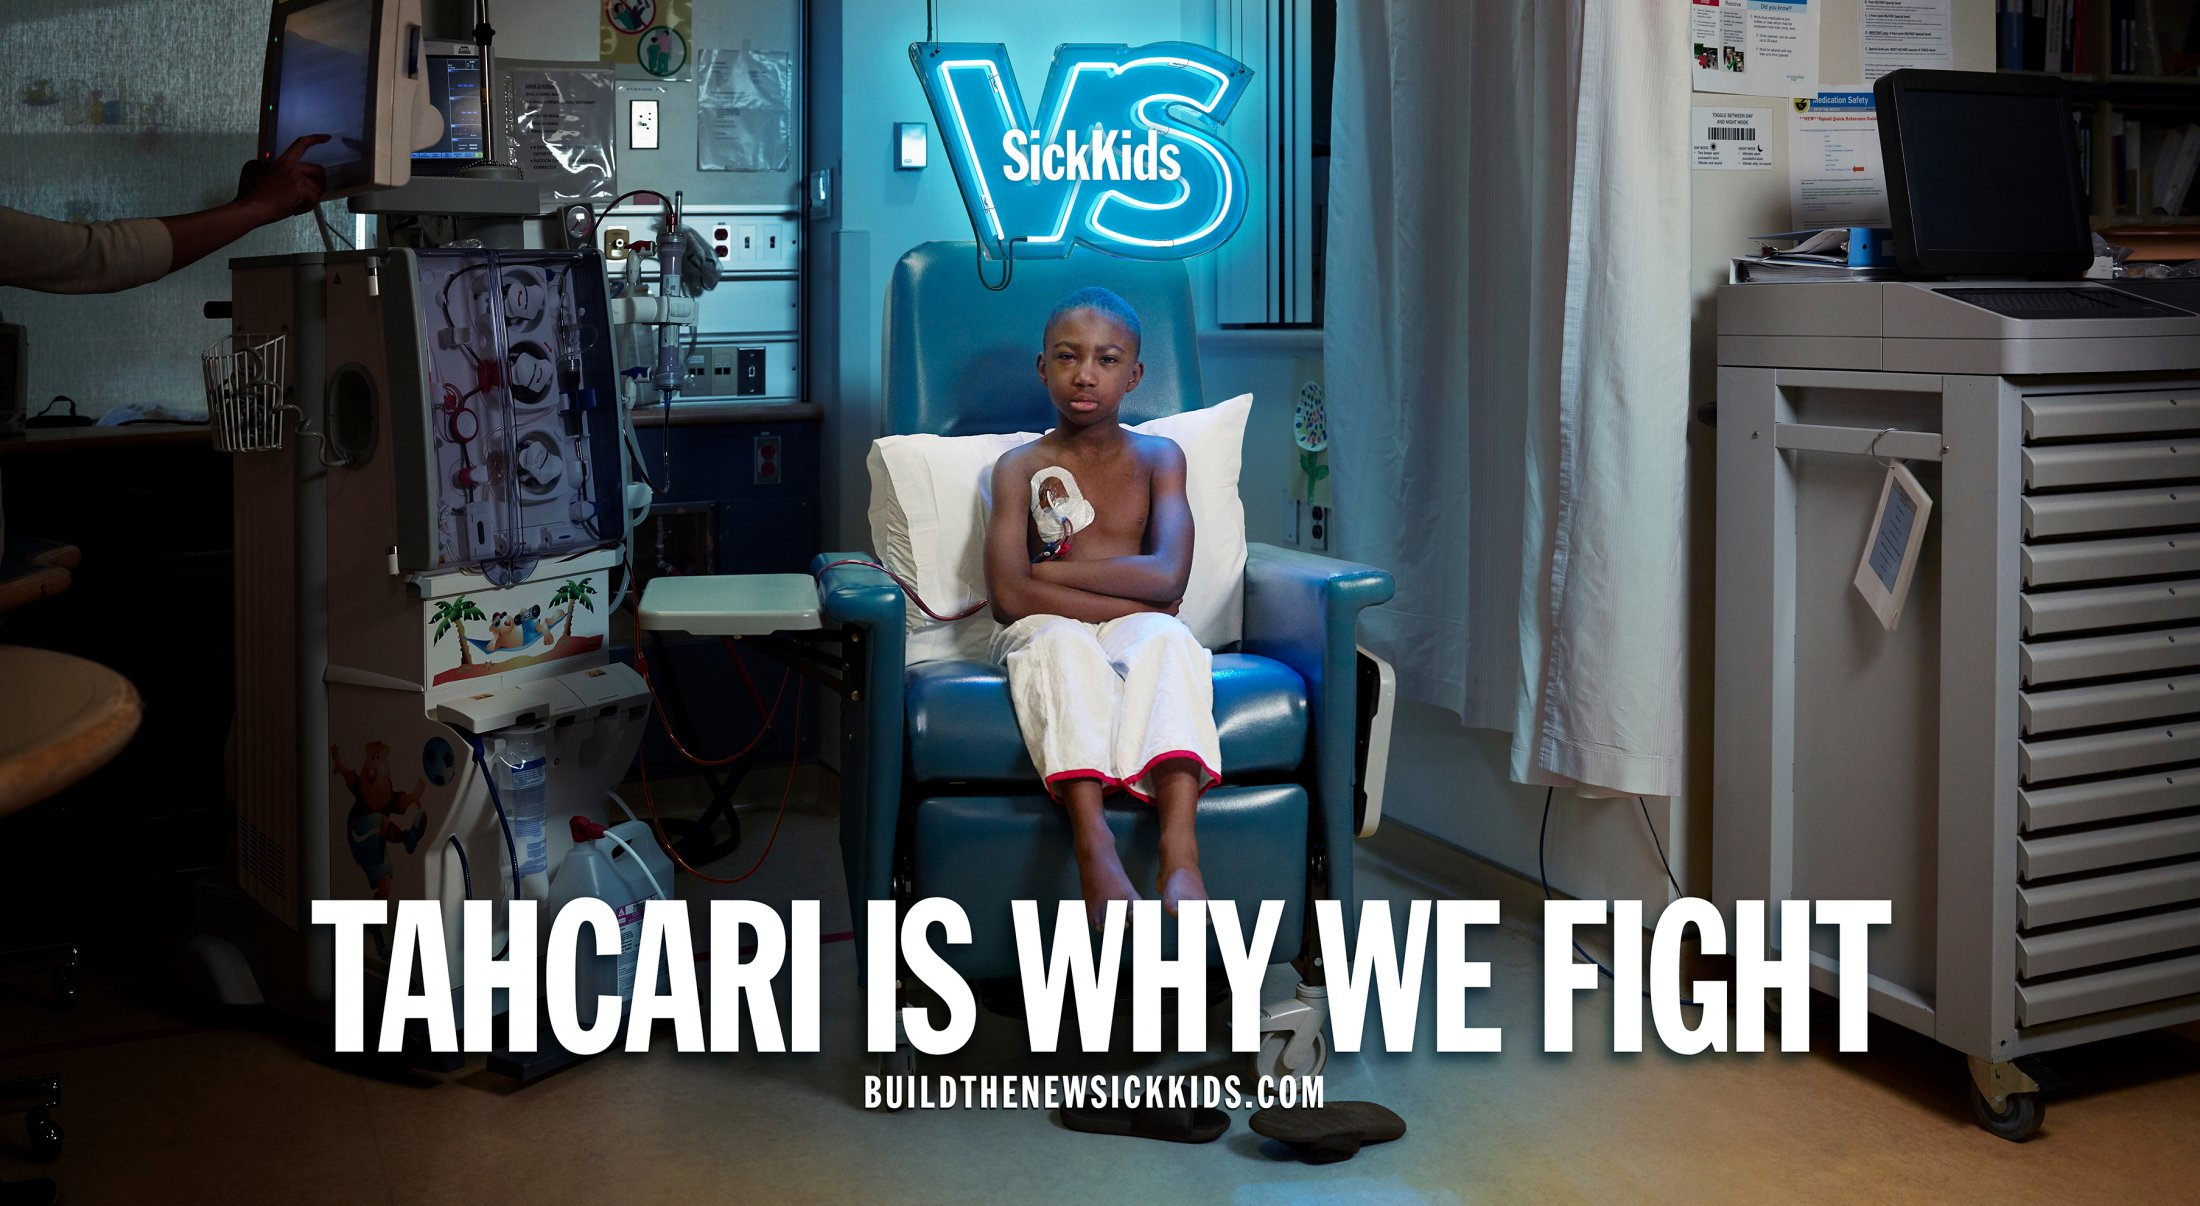 Thumbnail for SickKids VS. This is Why